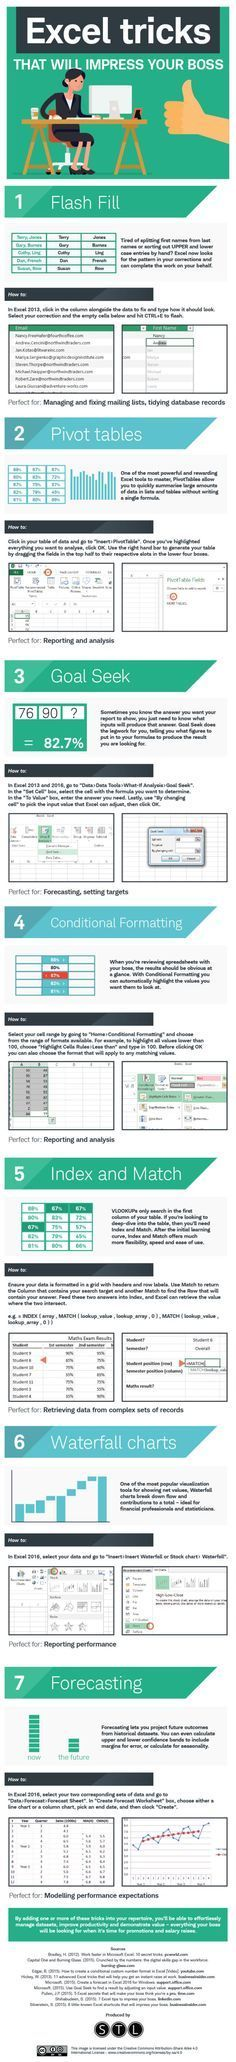 Seven Useful Microsoft Excel Features You May Not Be Using